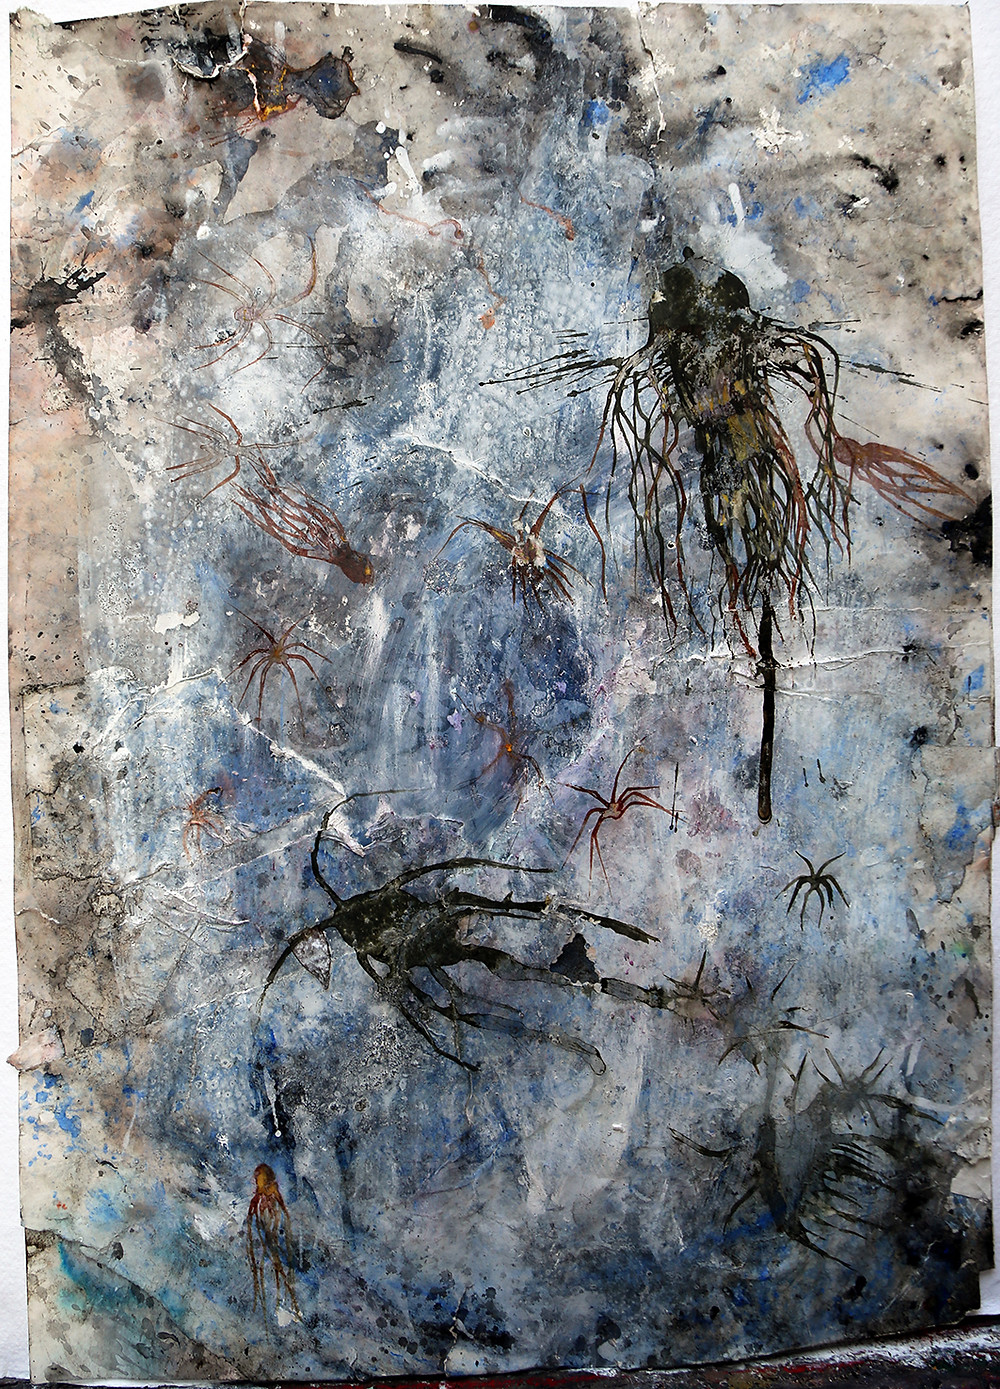 """""""In the eve of the lost world 65"""" Ink, acrylic paint, pastel, bleach, glue, organic material, sand, over paper. (70 x 49 cm.)"""